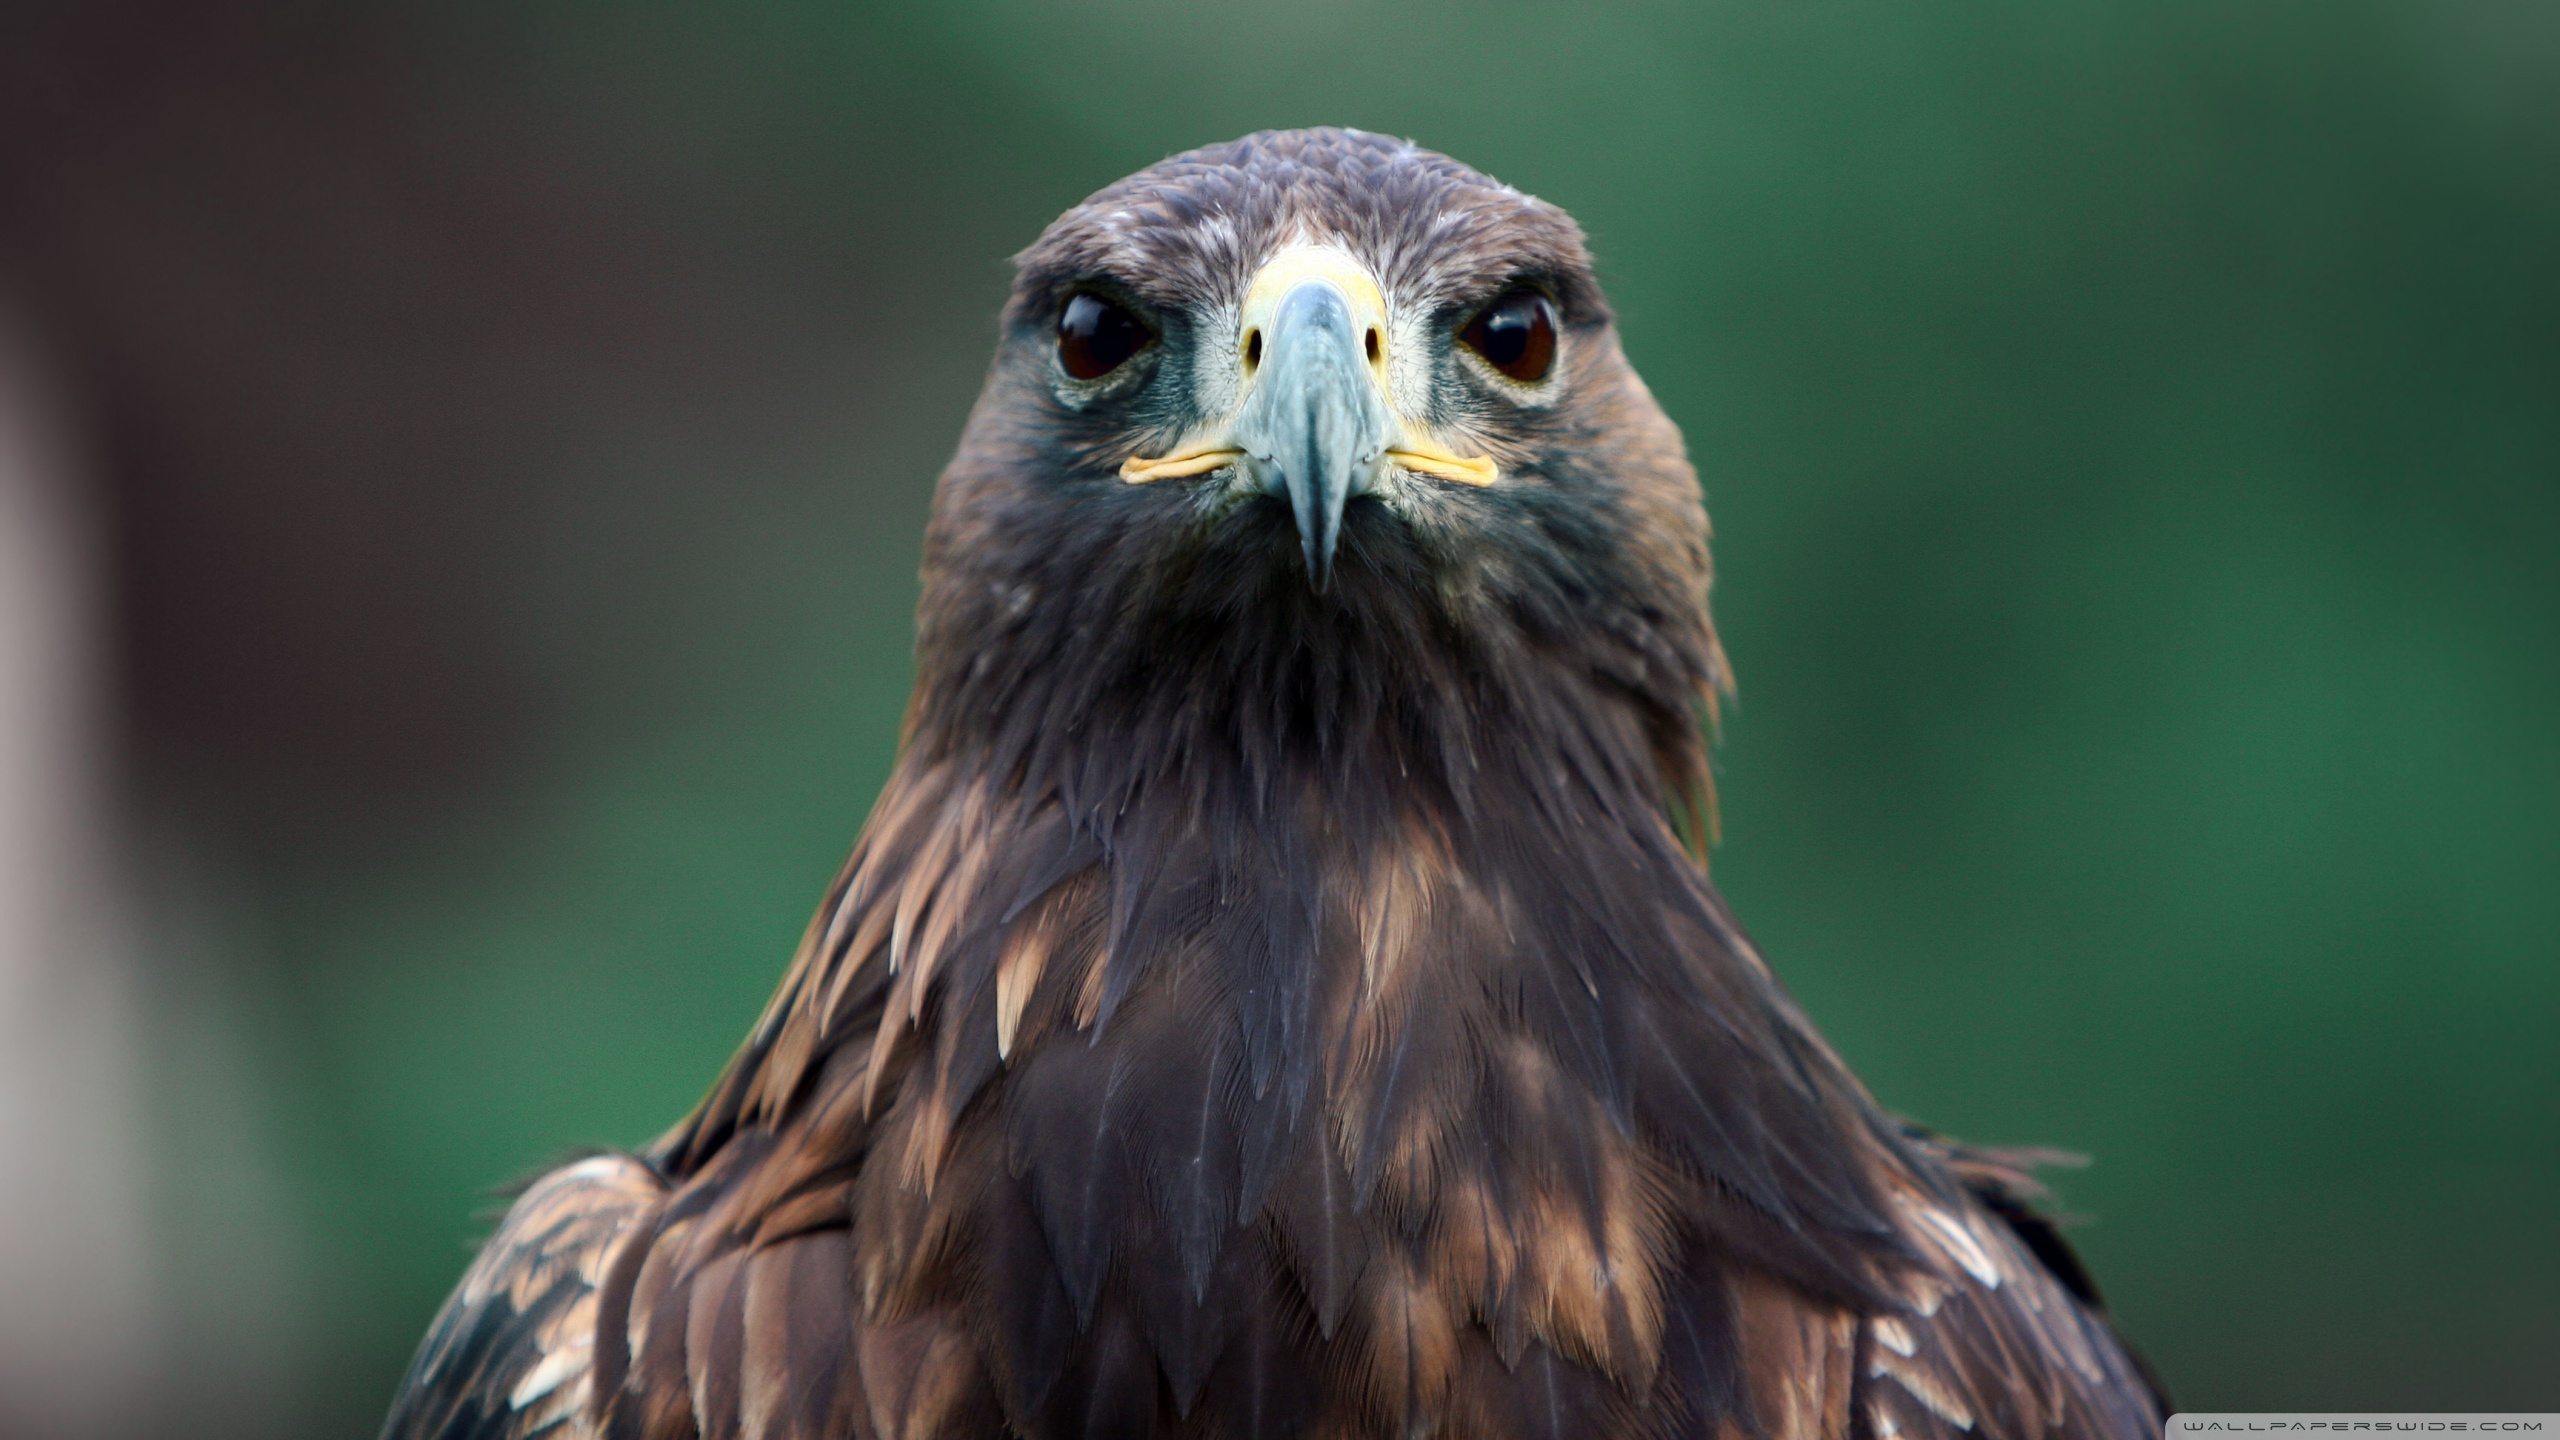 Hawk full hd wallpaper and background image 2560x1440 - Hawk iphone wallpaper ...